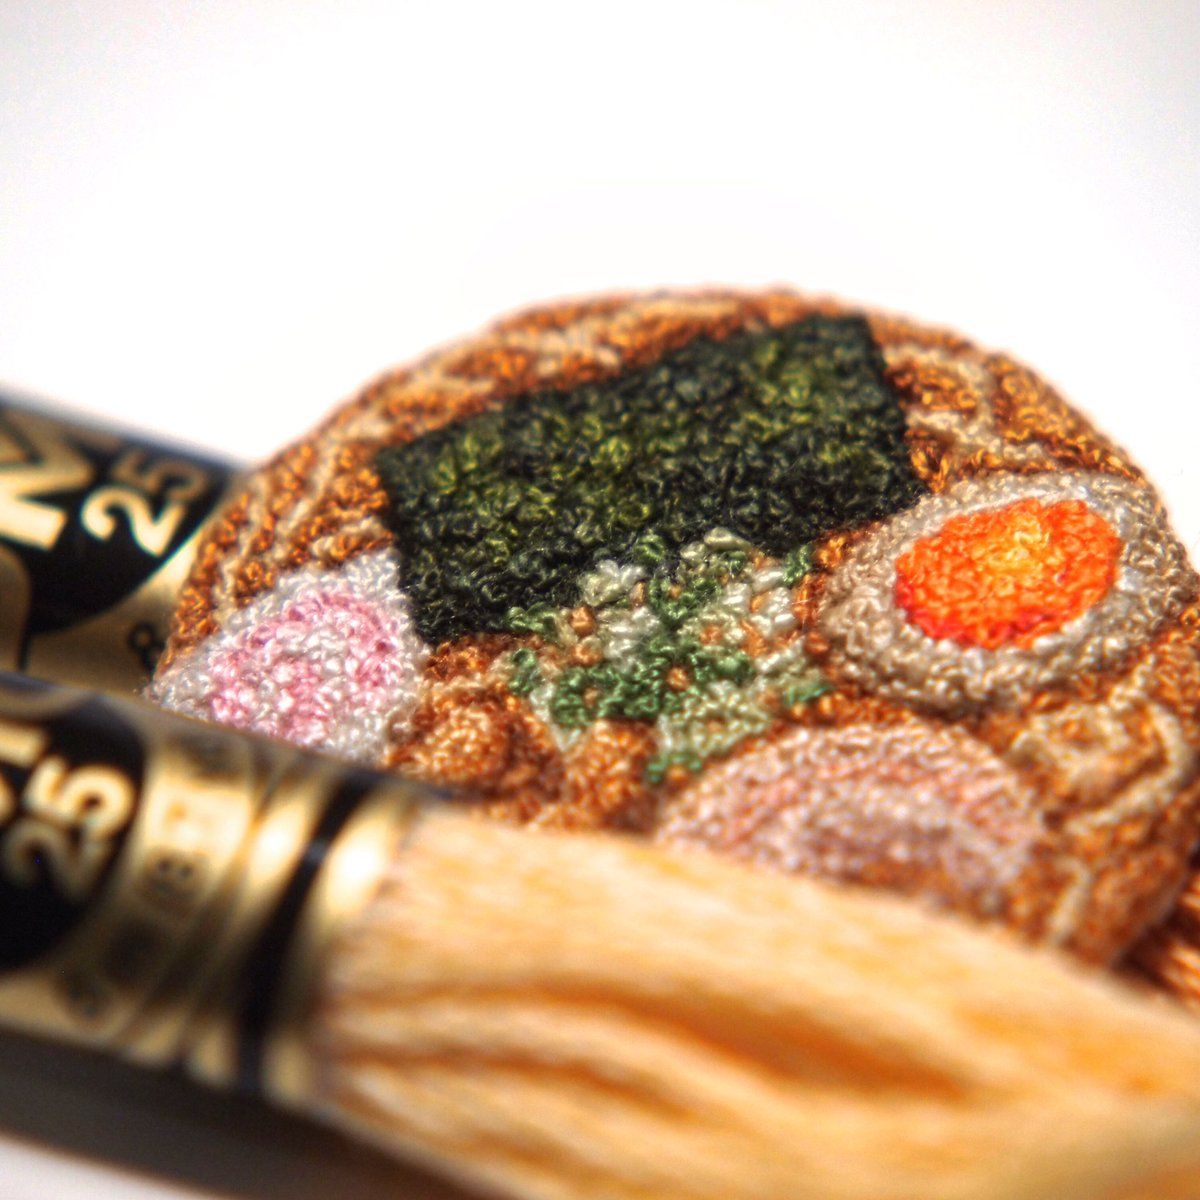 Miniture Embroidered Foods by Japanese Artist ipnot | Japanese embroidery,  Embroidery, Embroidery patterns